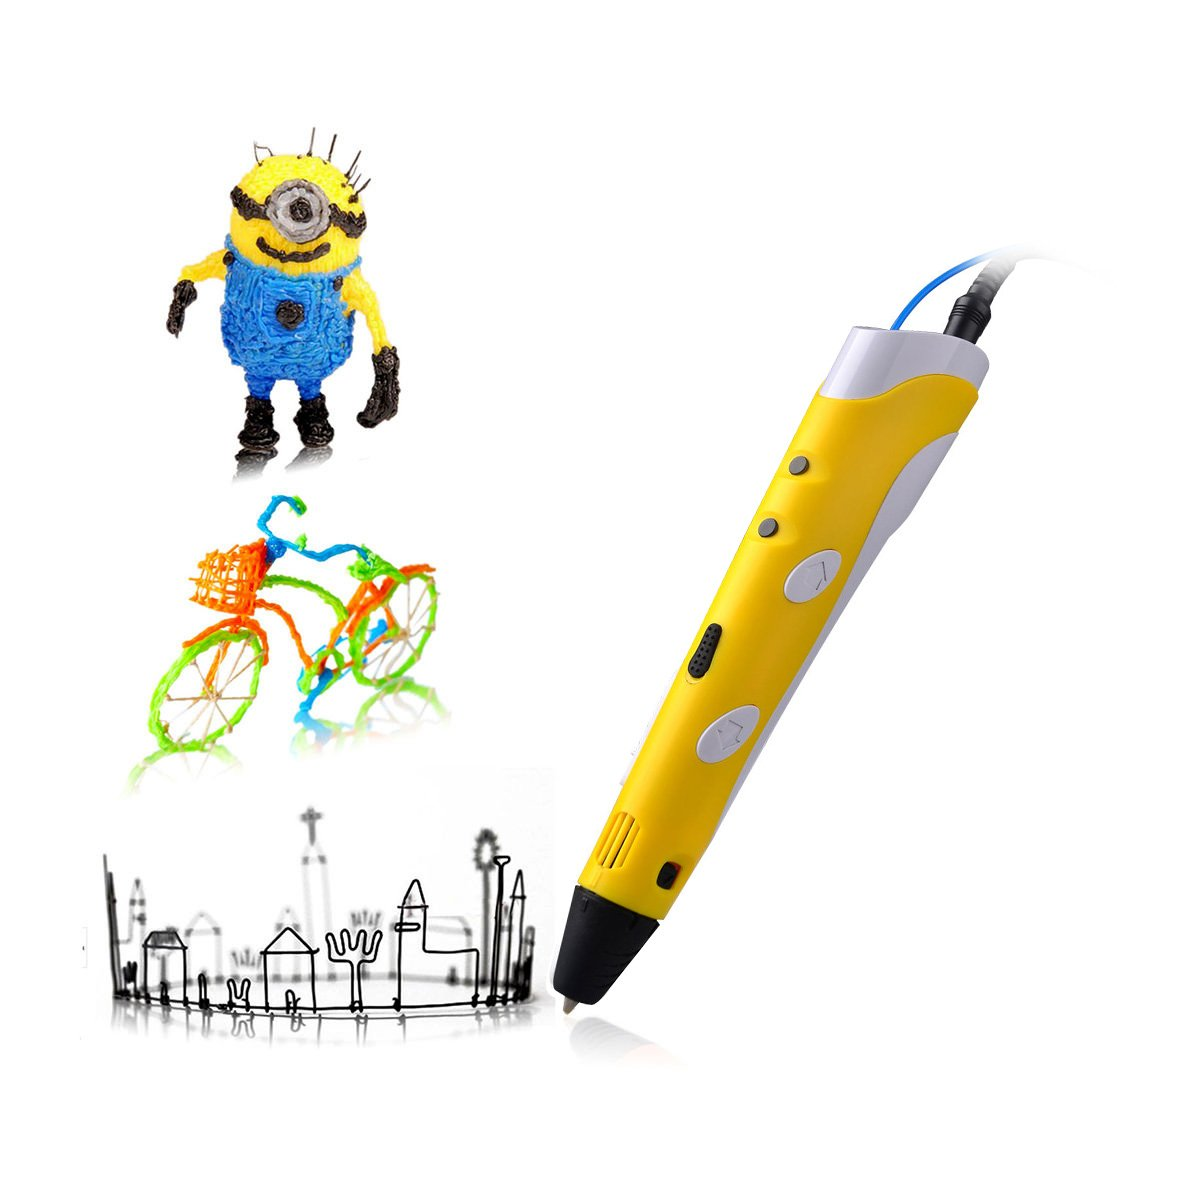 Soyan 3D Arts & Crafts Drawing 3D Printing Doodle Printer Pen with FREE 30G ABS Filament(Yellow)